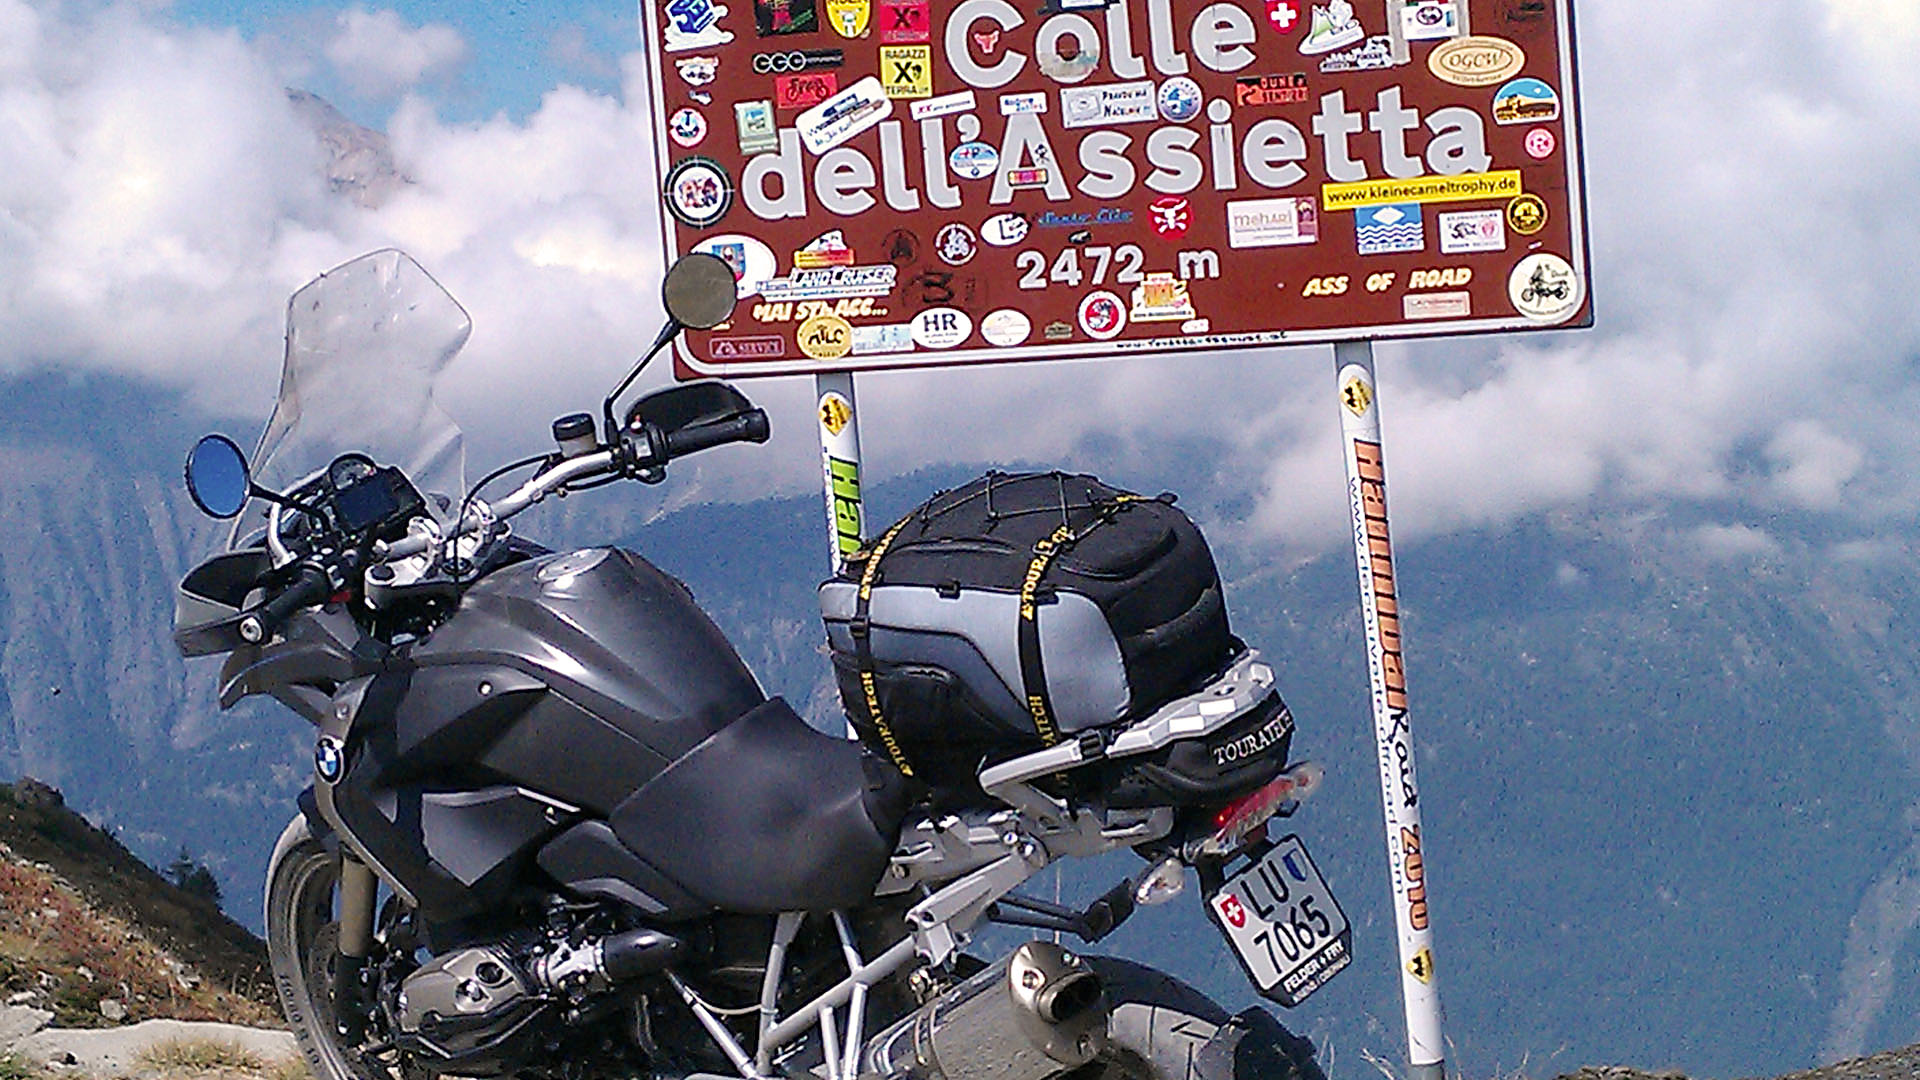 2472 U - I - Colle dell'Assietta